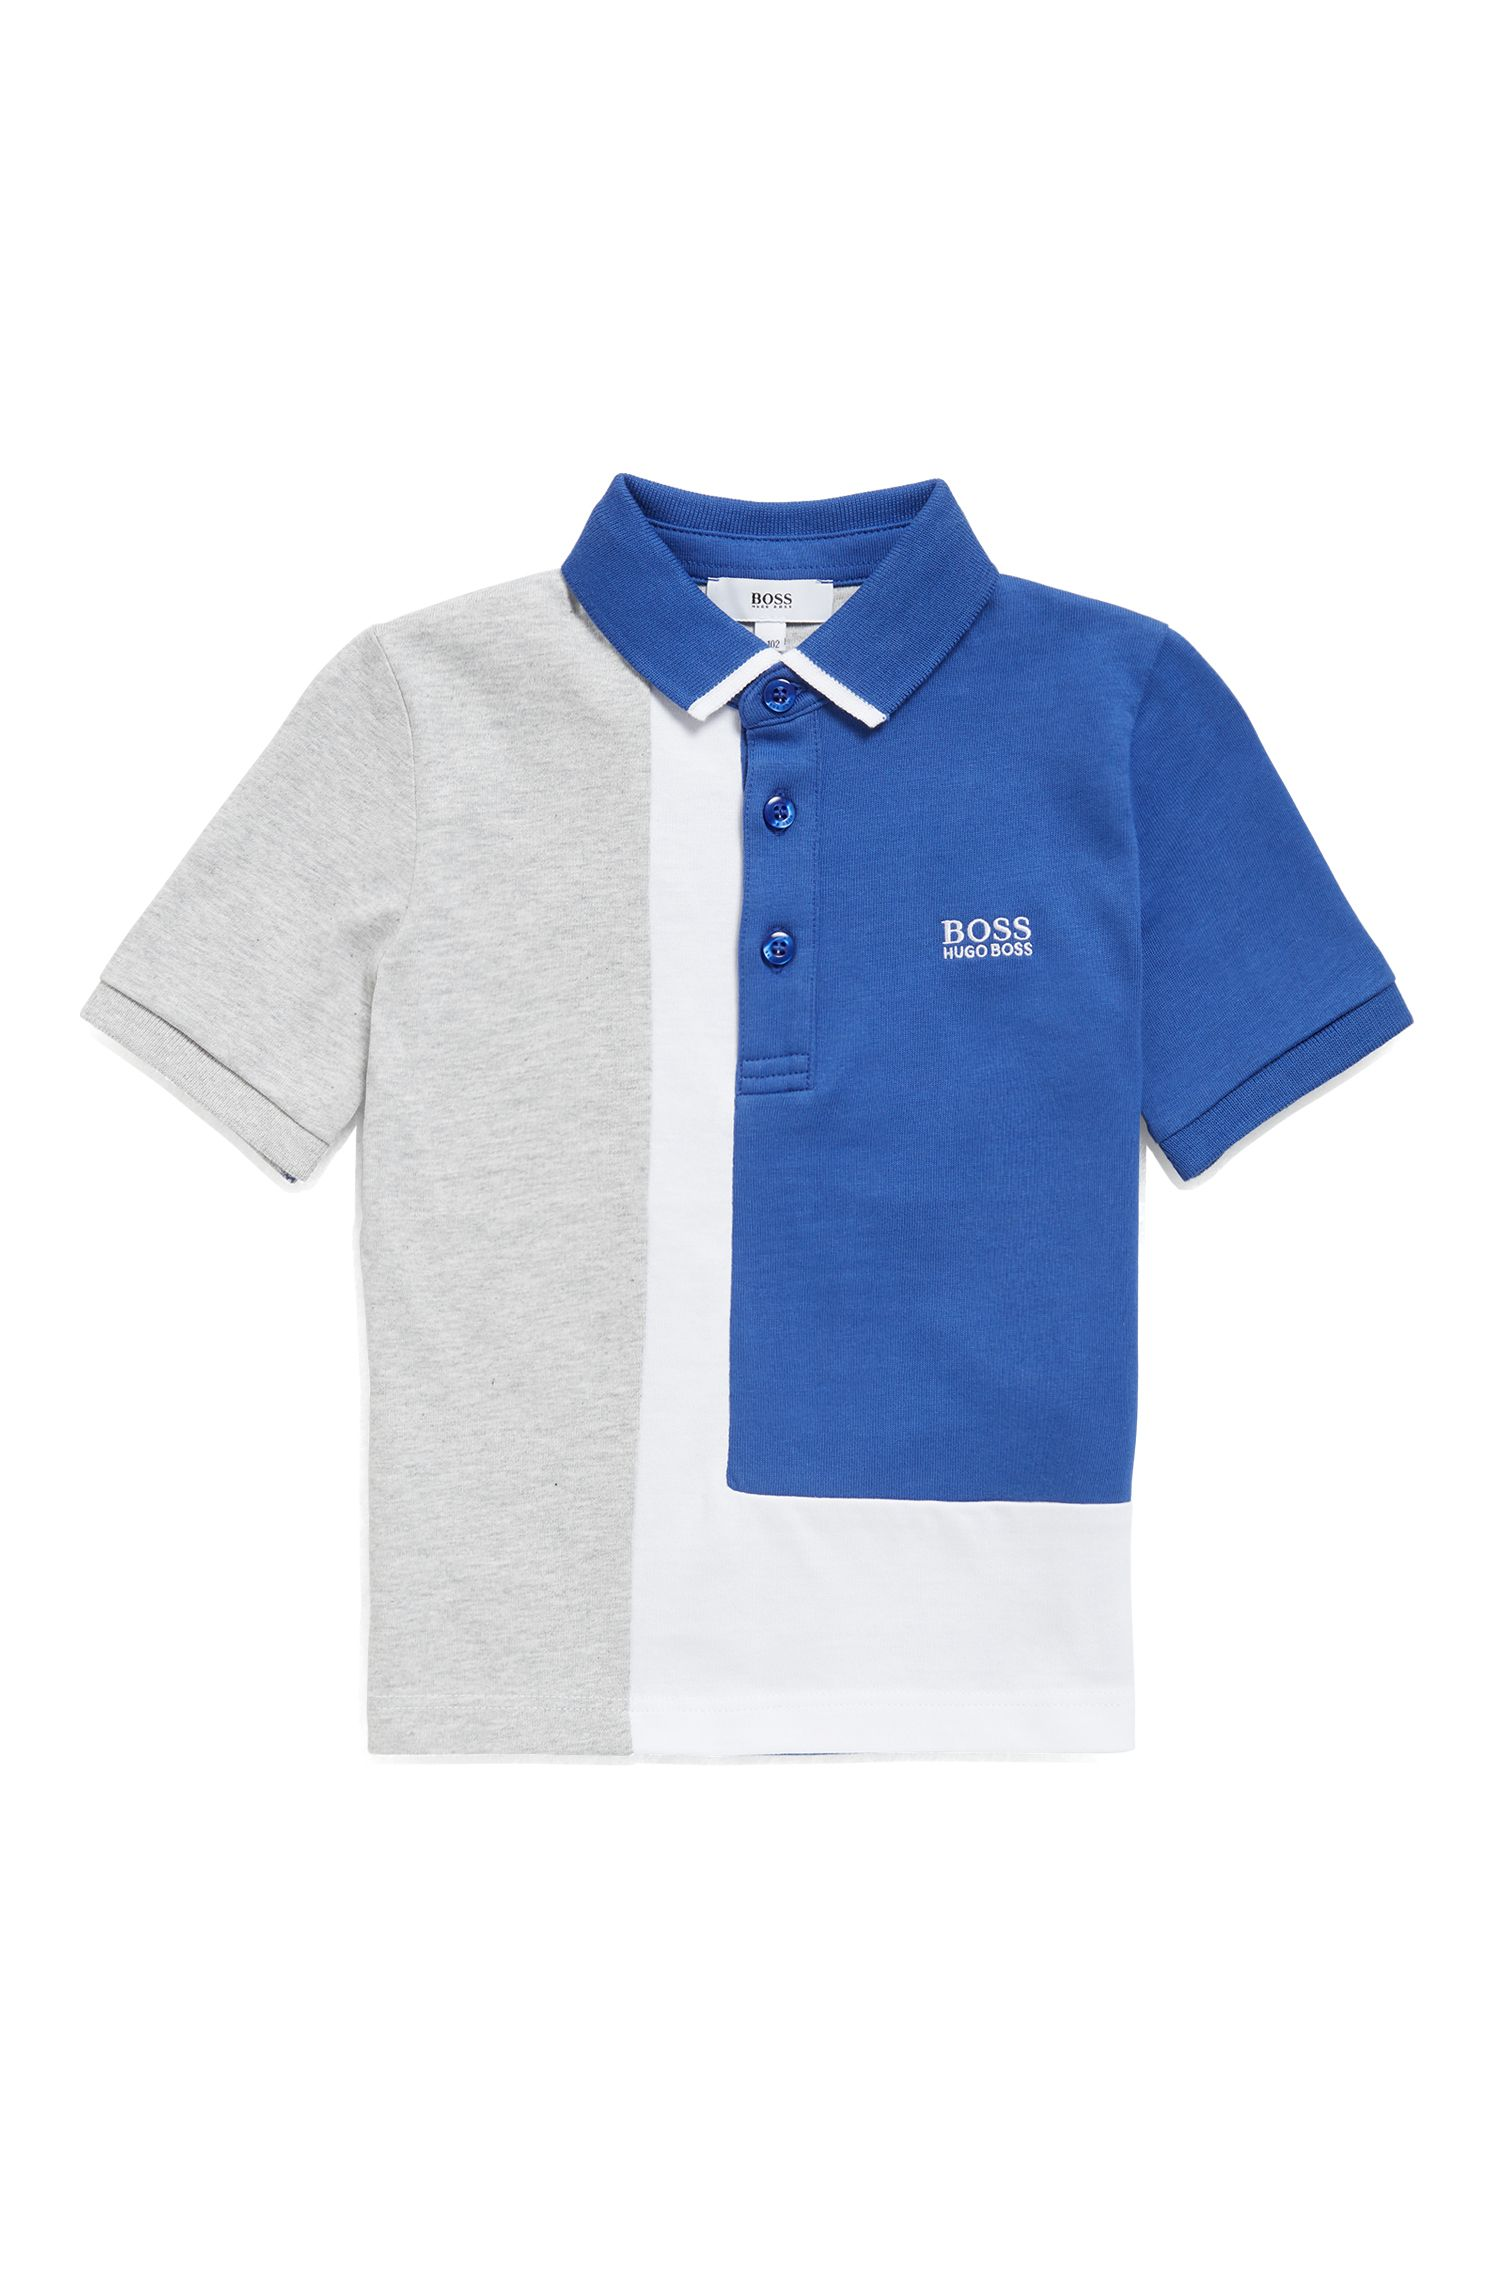 Kids-Poloshirt aus Single Jersey